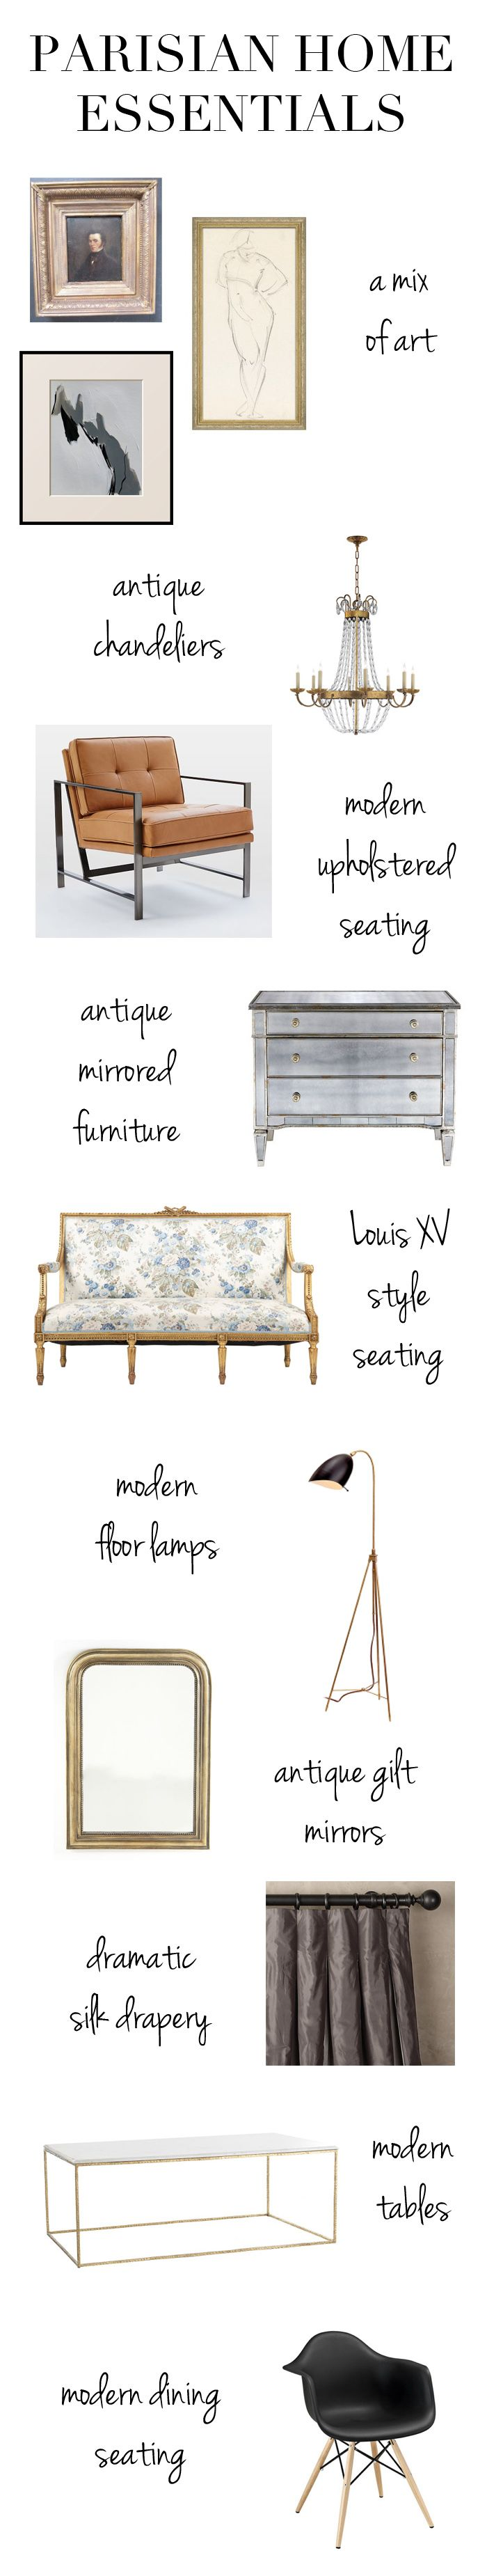 Elements of Style Blog | Parisian Style at Home and On You!